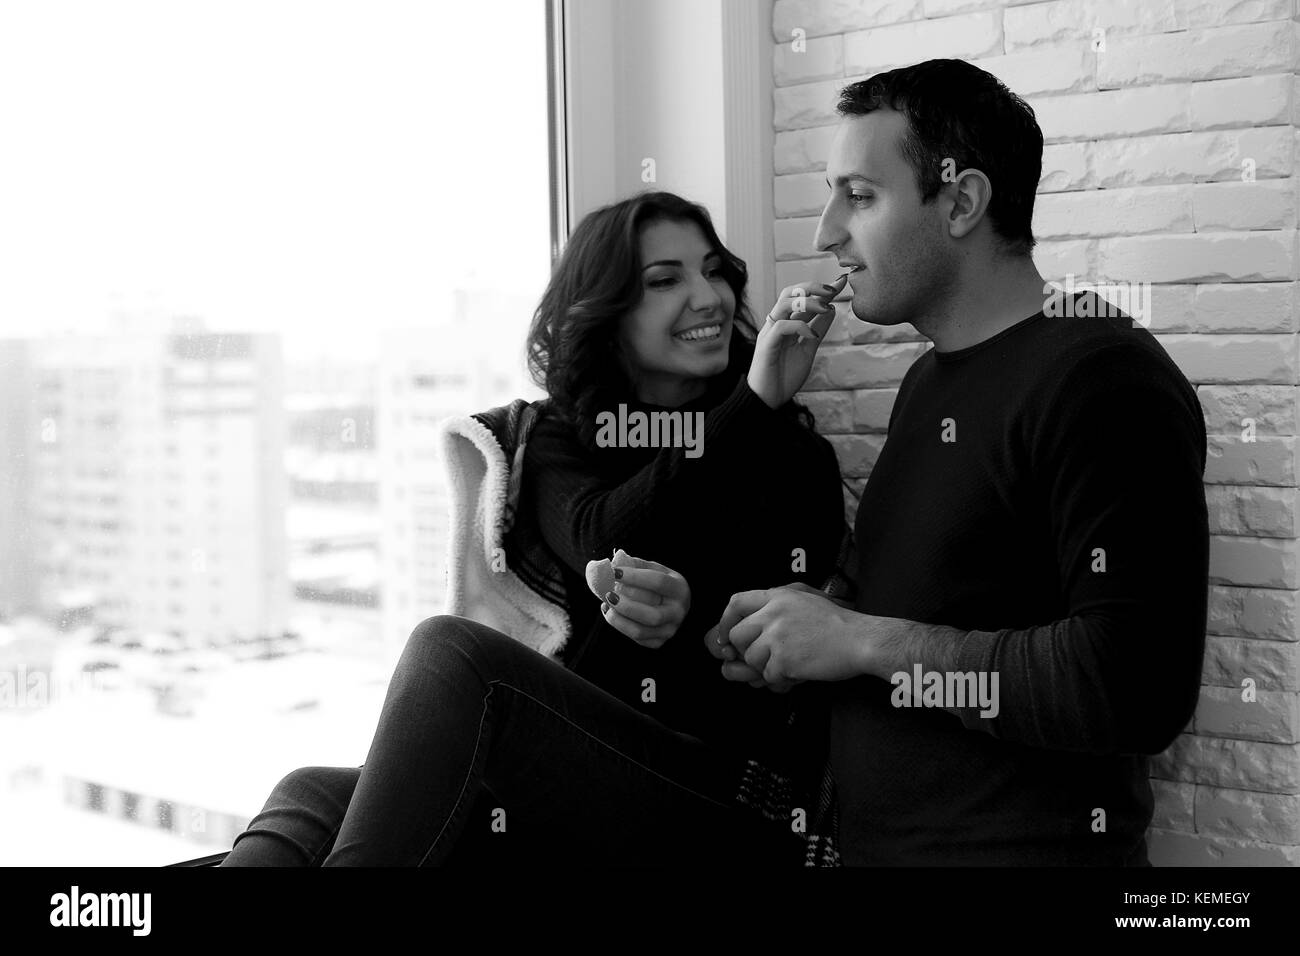 Couple in front of a window - Stock Image